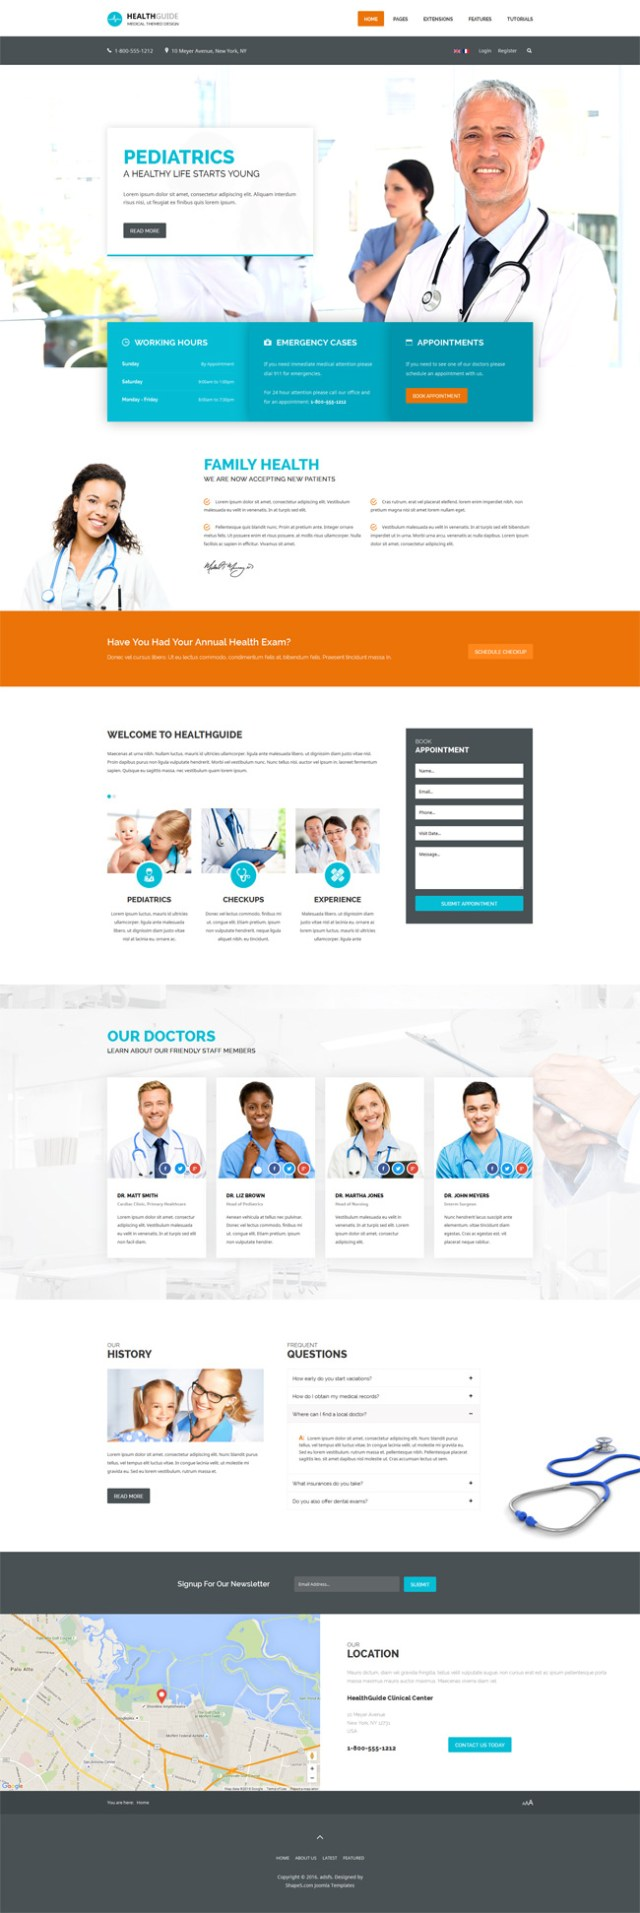 Joomla Template By Shape5